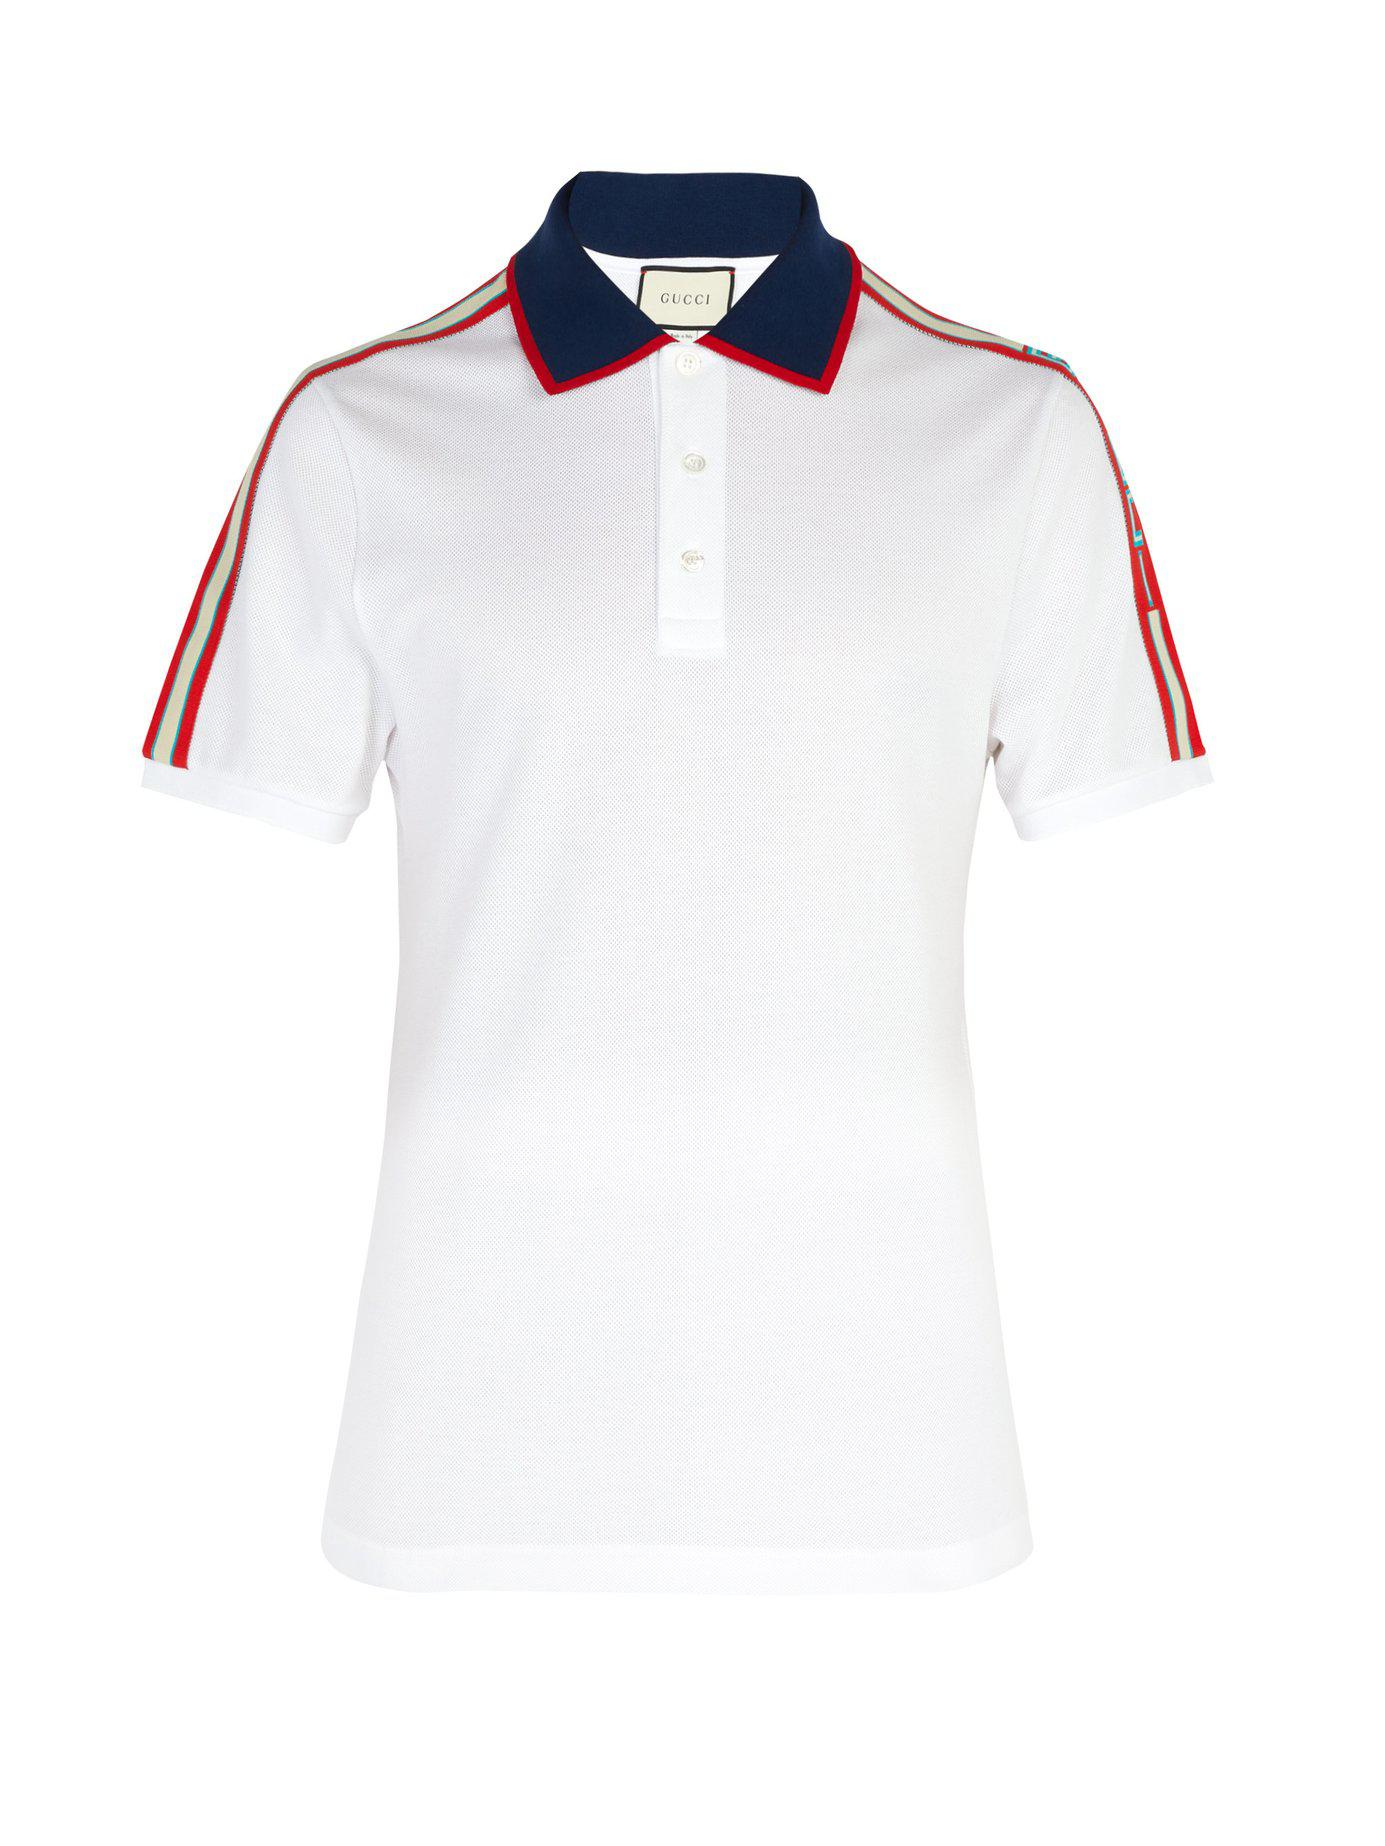 8c848a18695 Gucci Cotton Piqué Polo Shirt in White for Men - Lyst